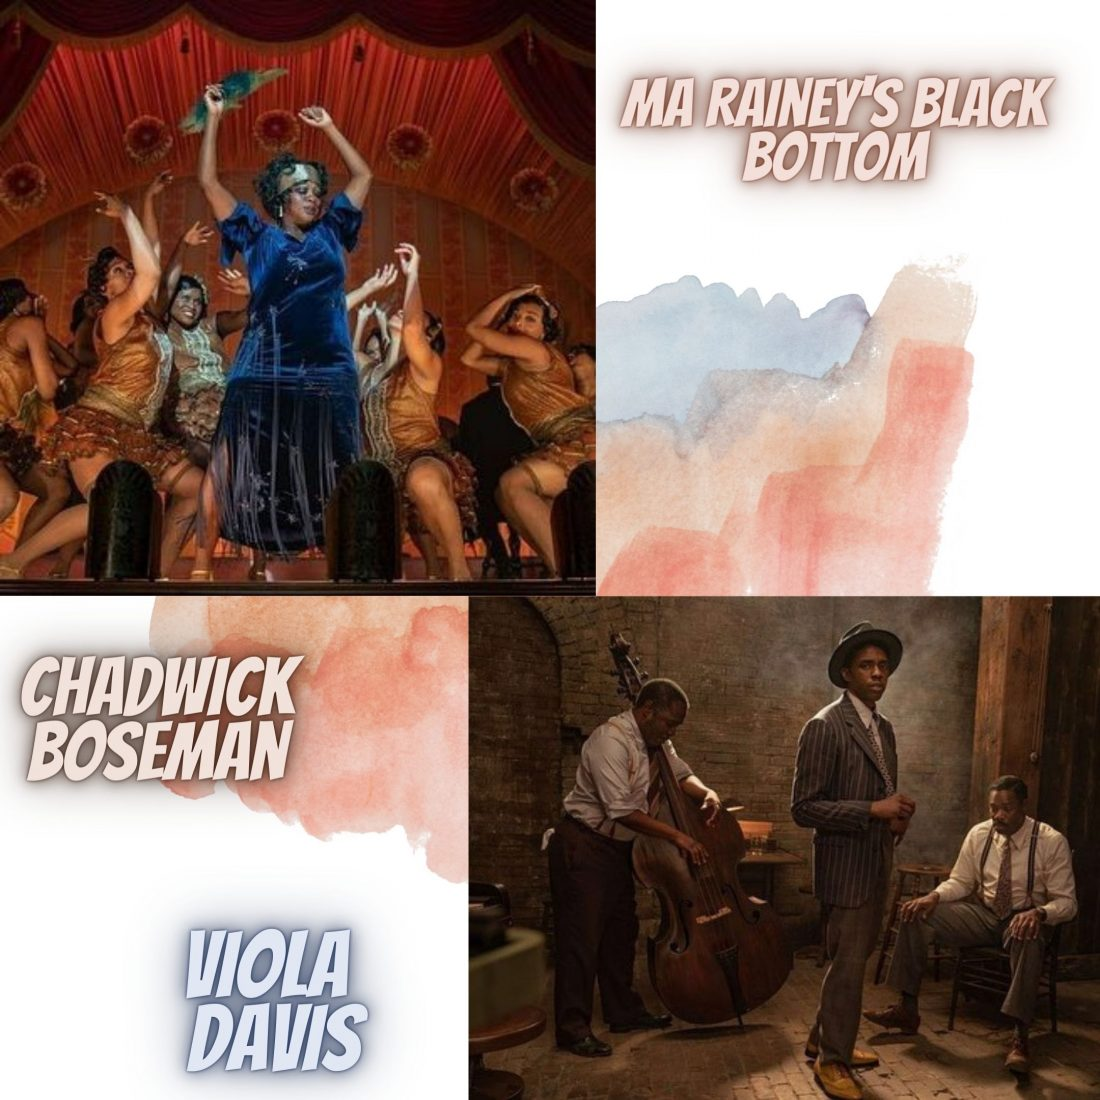 Watch Trailer of Chadwick Boseman's Last Film, Ma Rainey's Black Bottom